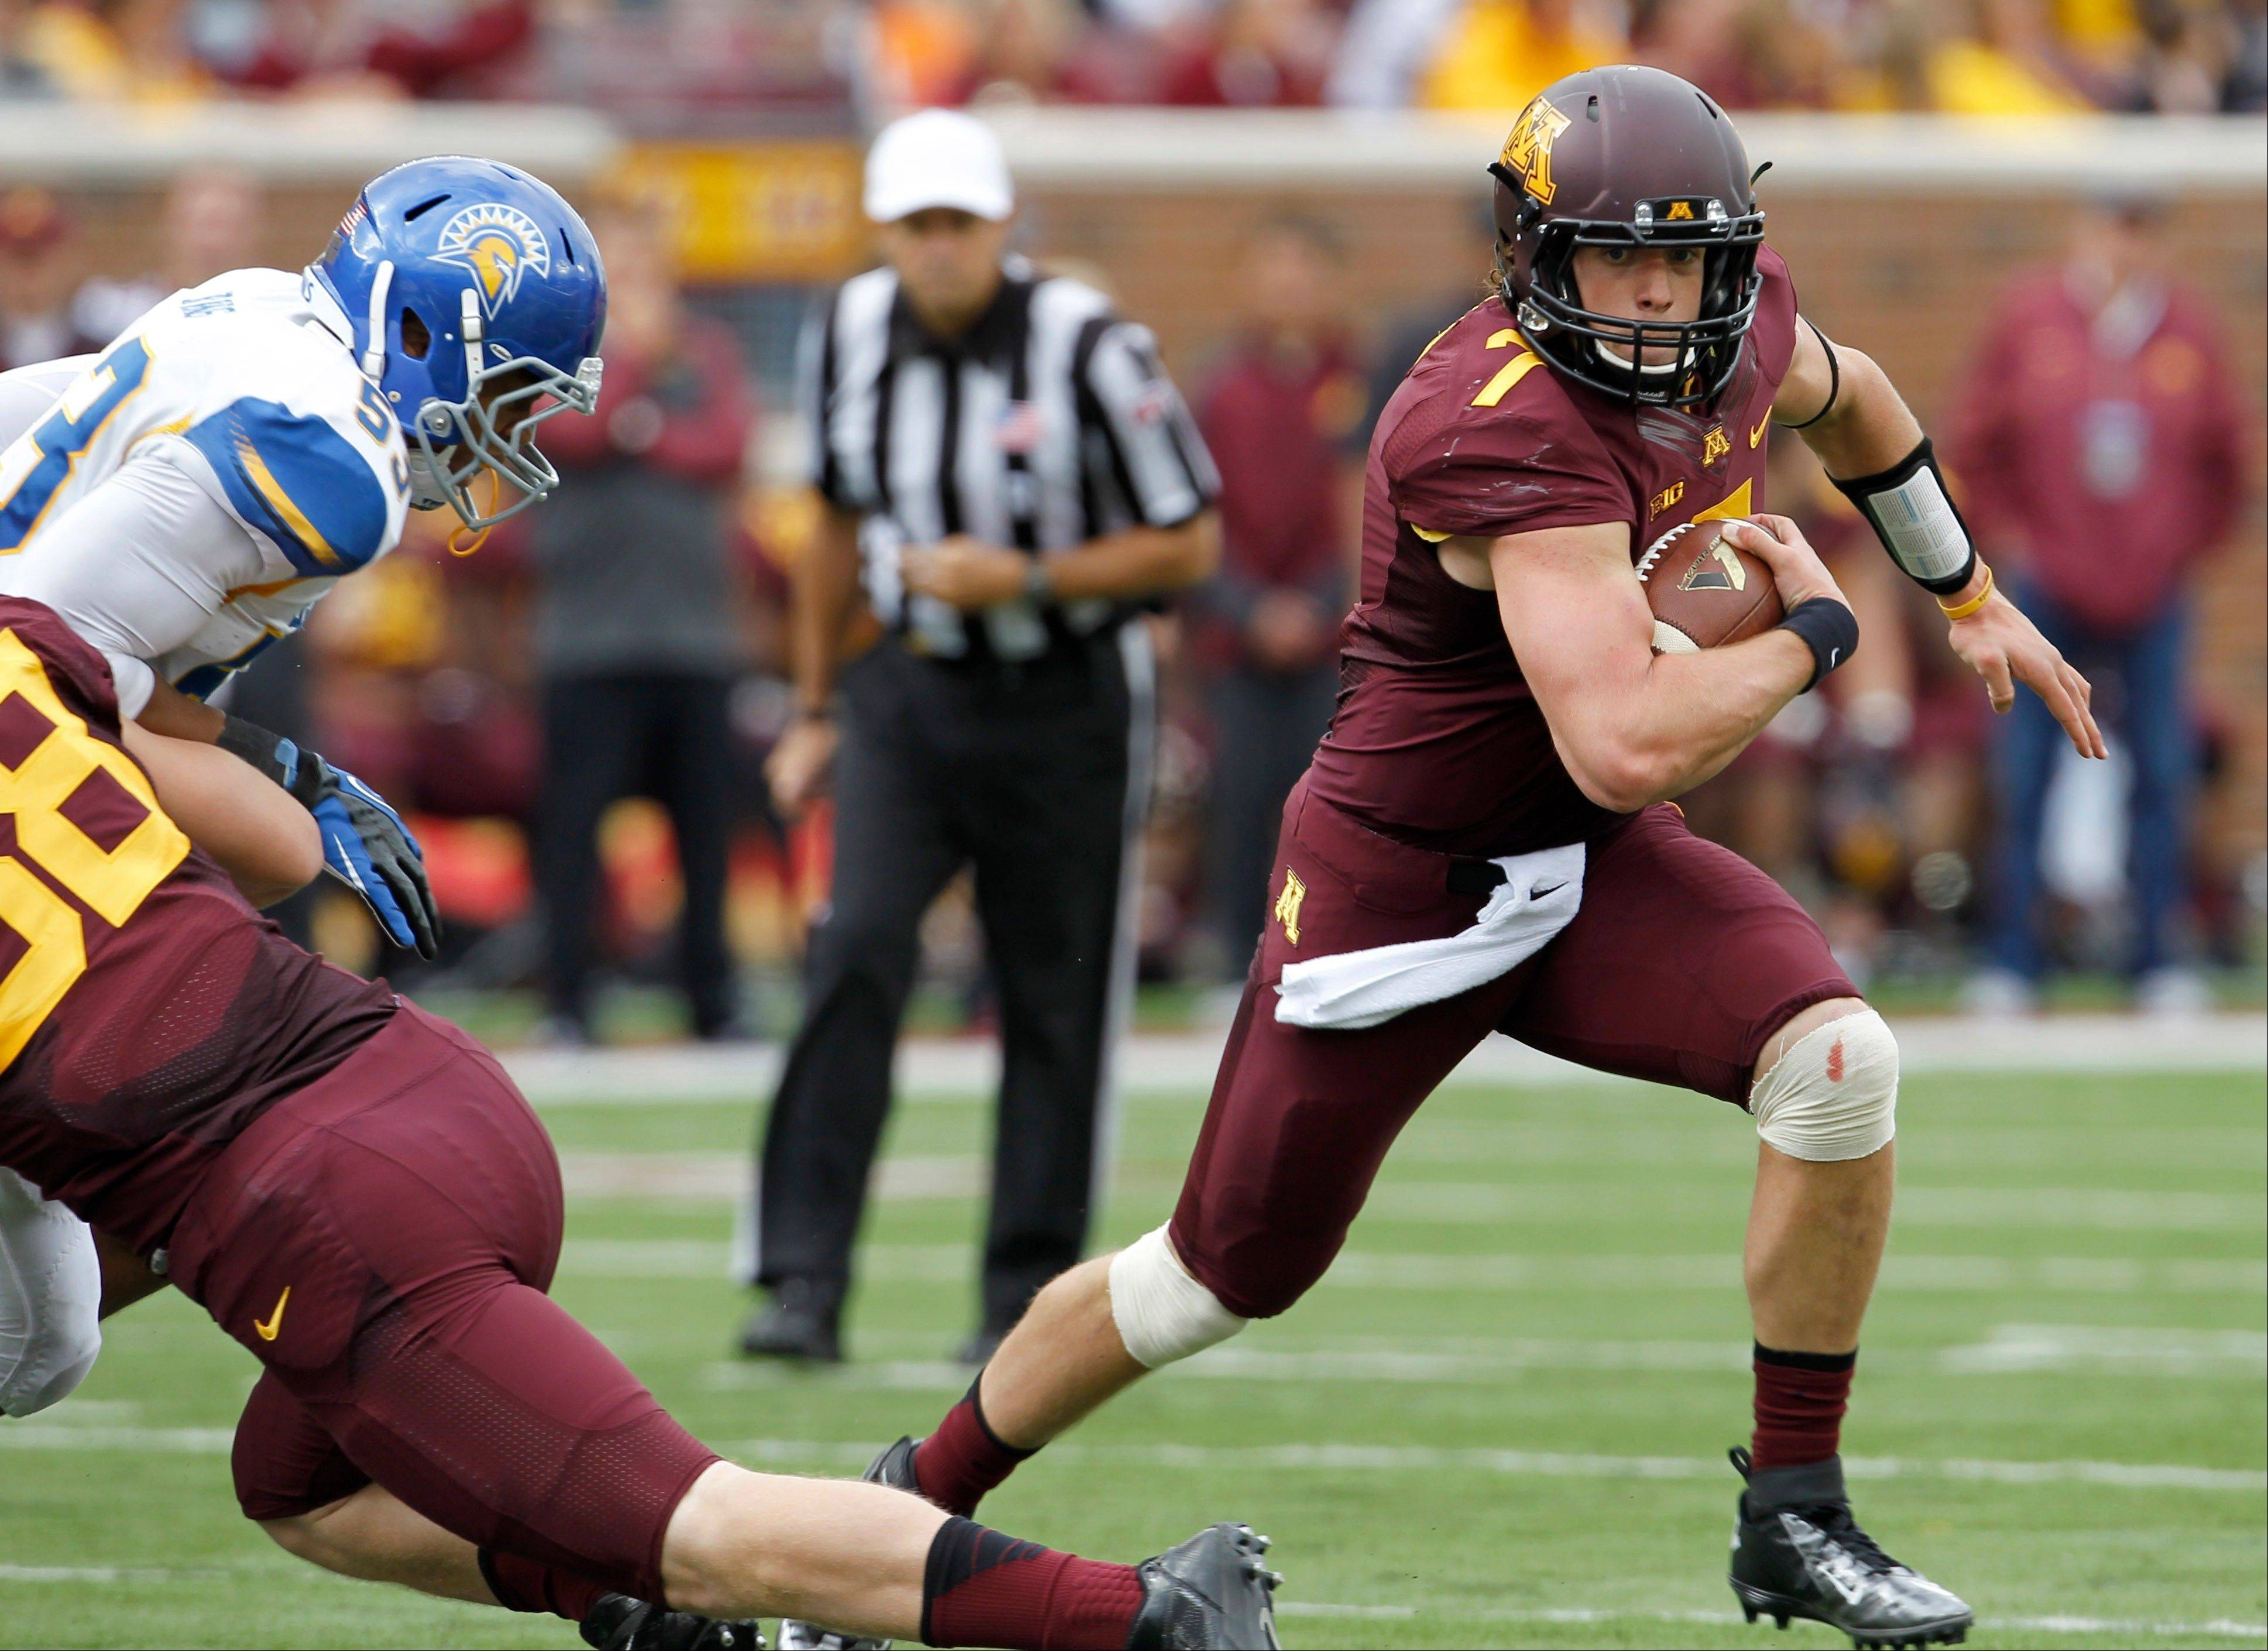 Minnesota quarterback Mitch Leidner, right, carries the ball for a 15-yard gain during the first quarter of an NCAA college football game against San Jose State in Minneapolis Saturday, Sept. 21, 2013.